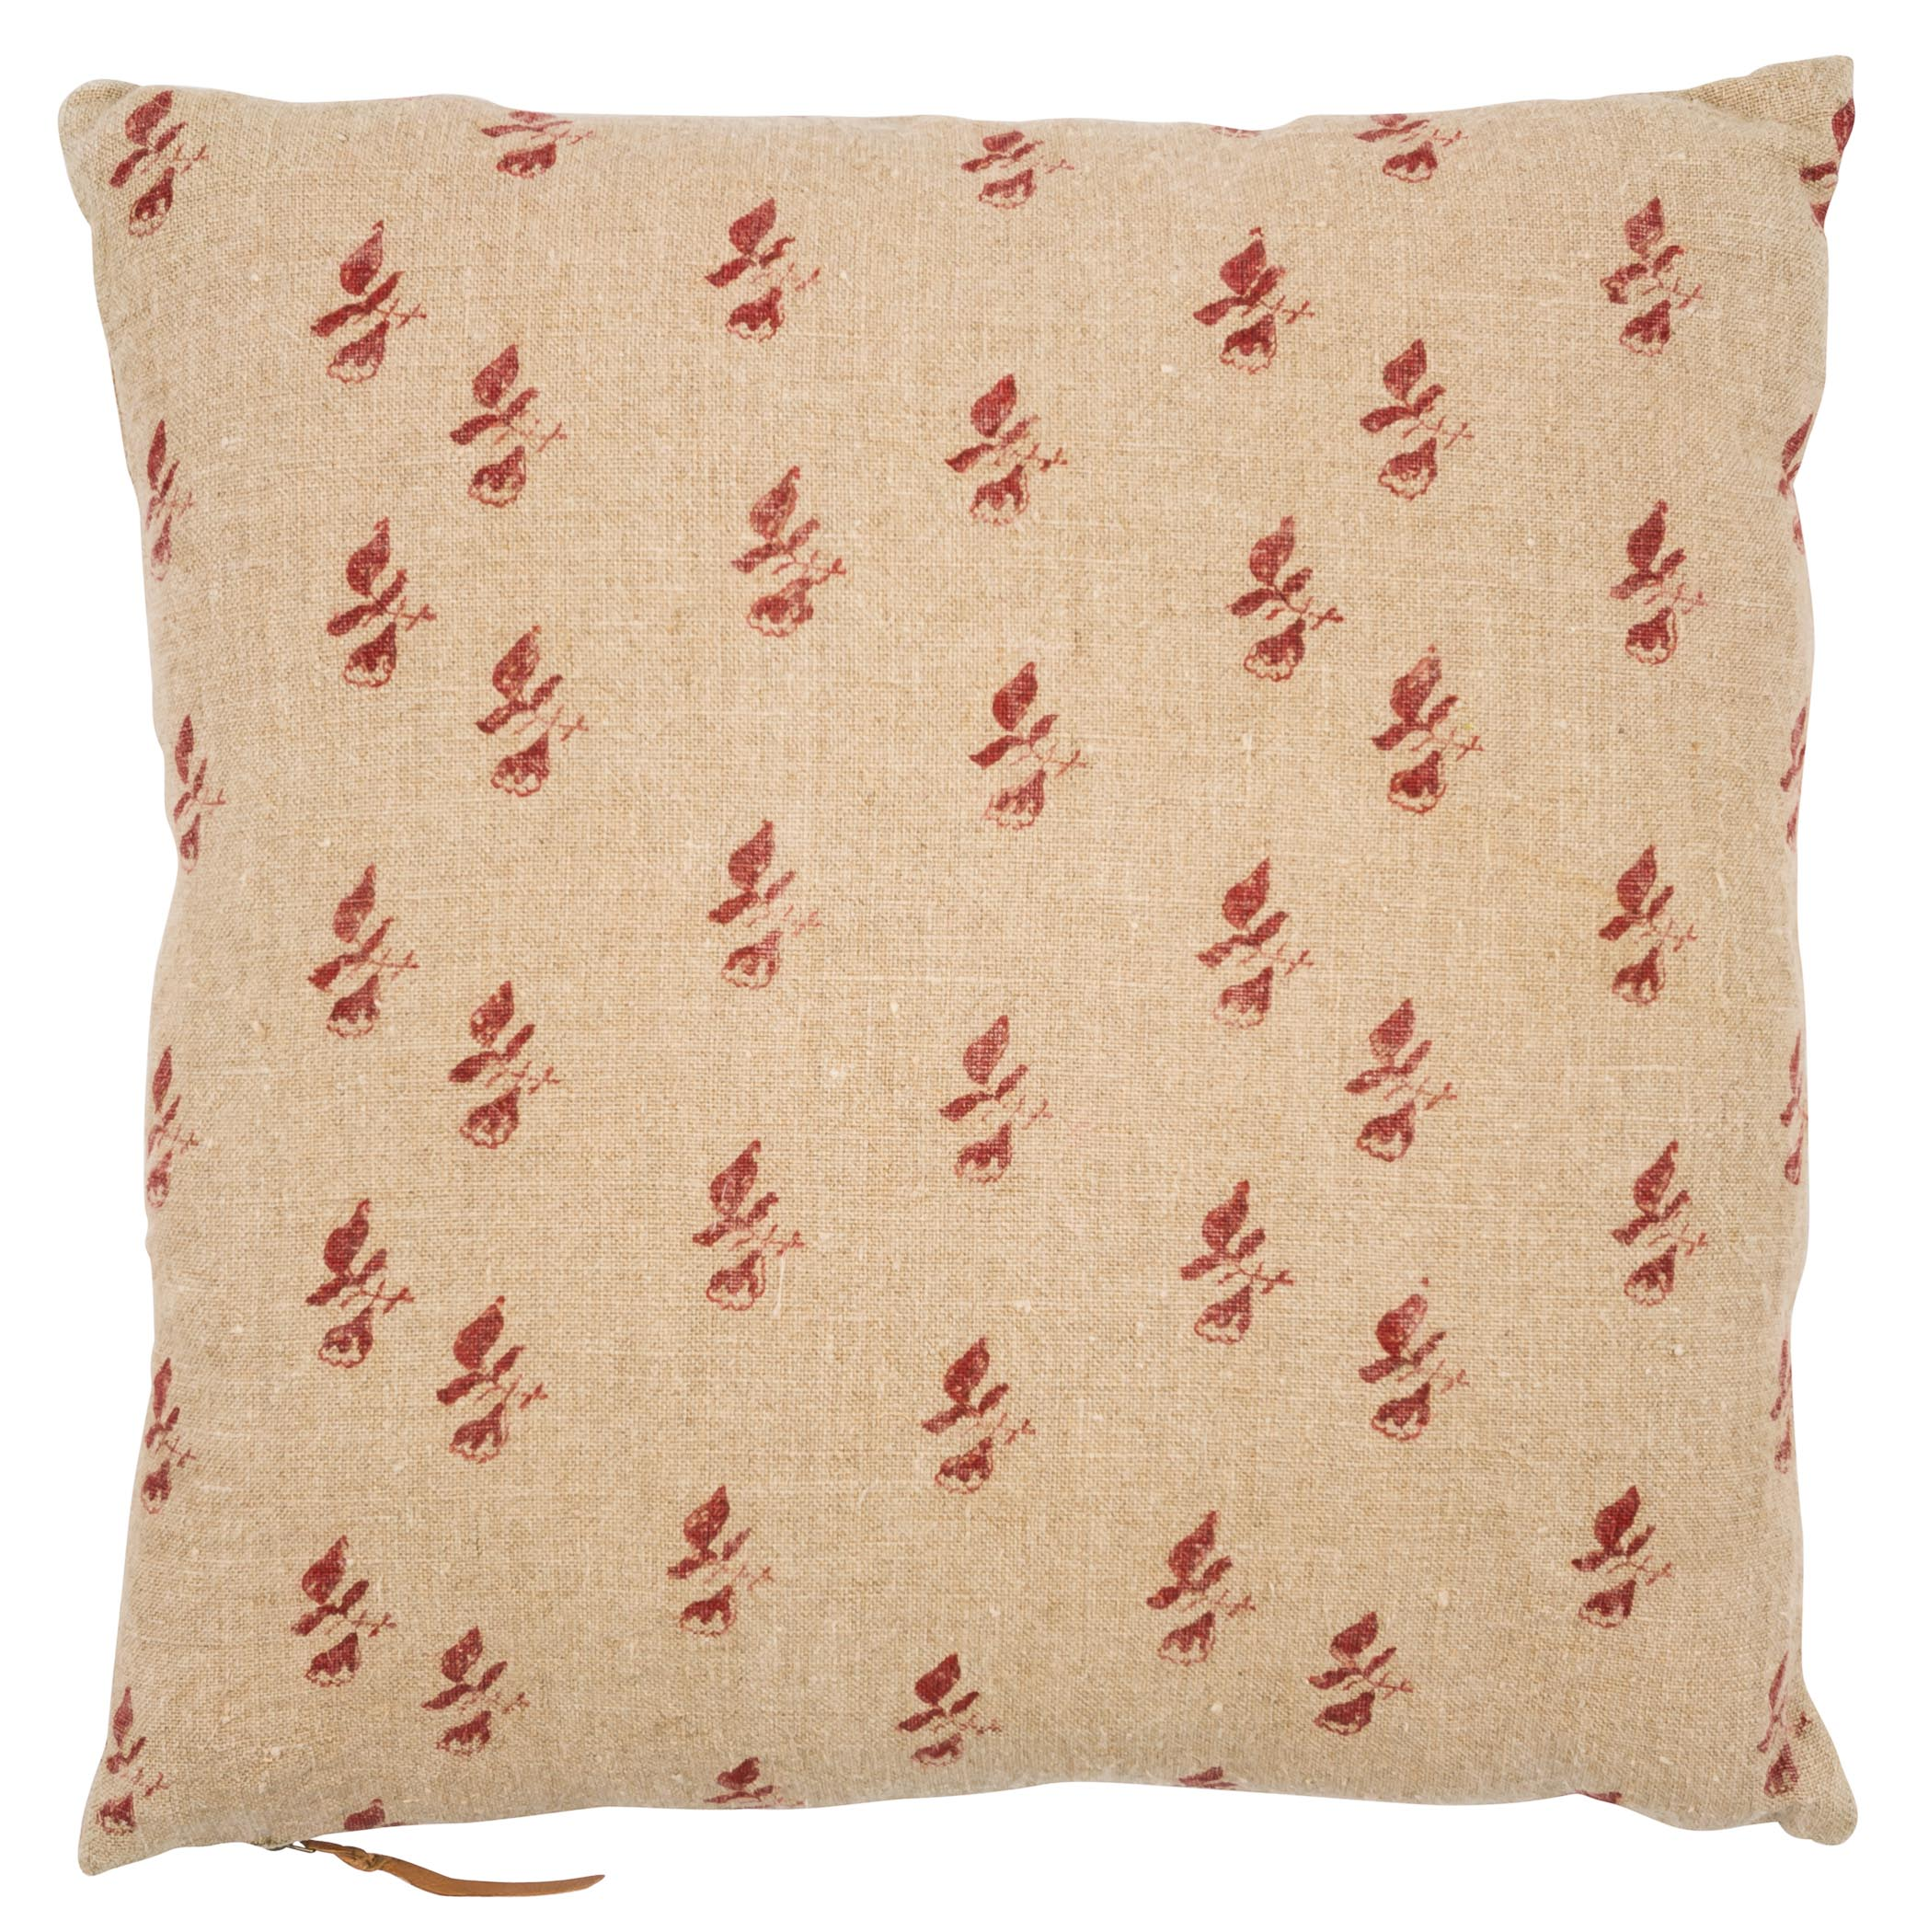 Cushion Cover - Bud - Spicy Red